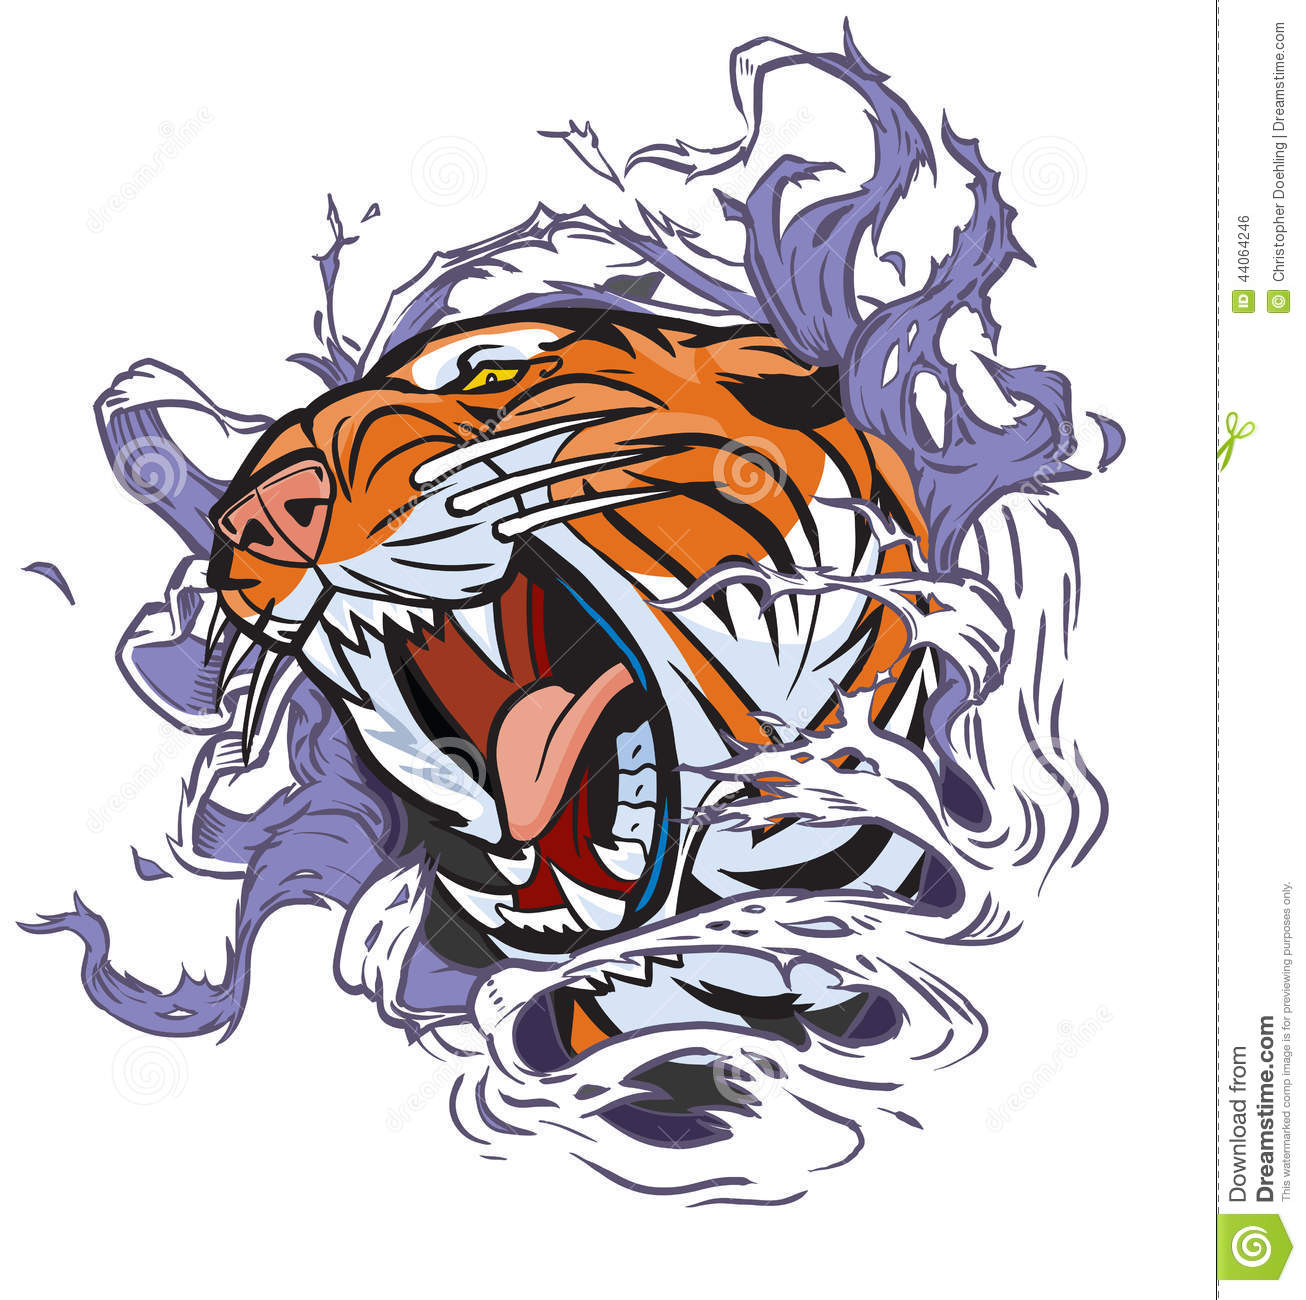 Tiger roar vector - photo#27